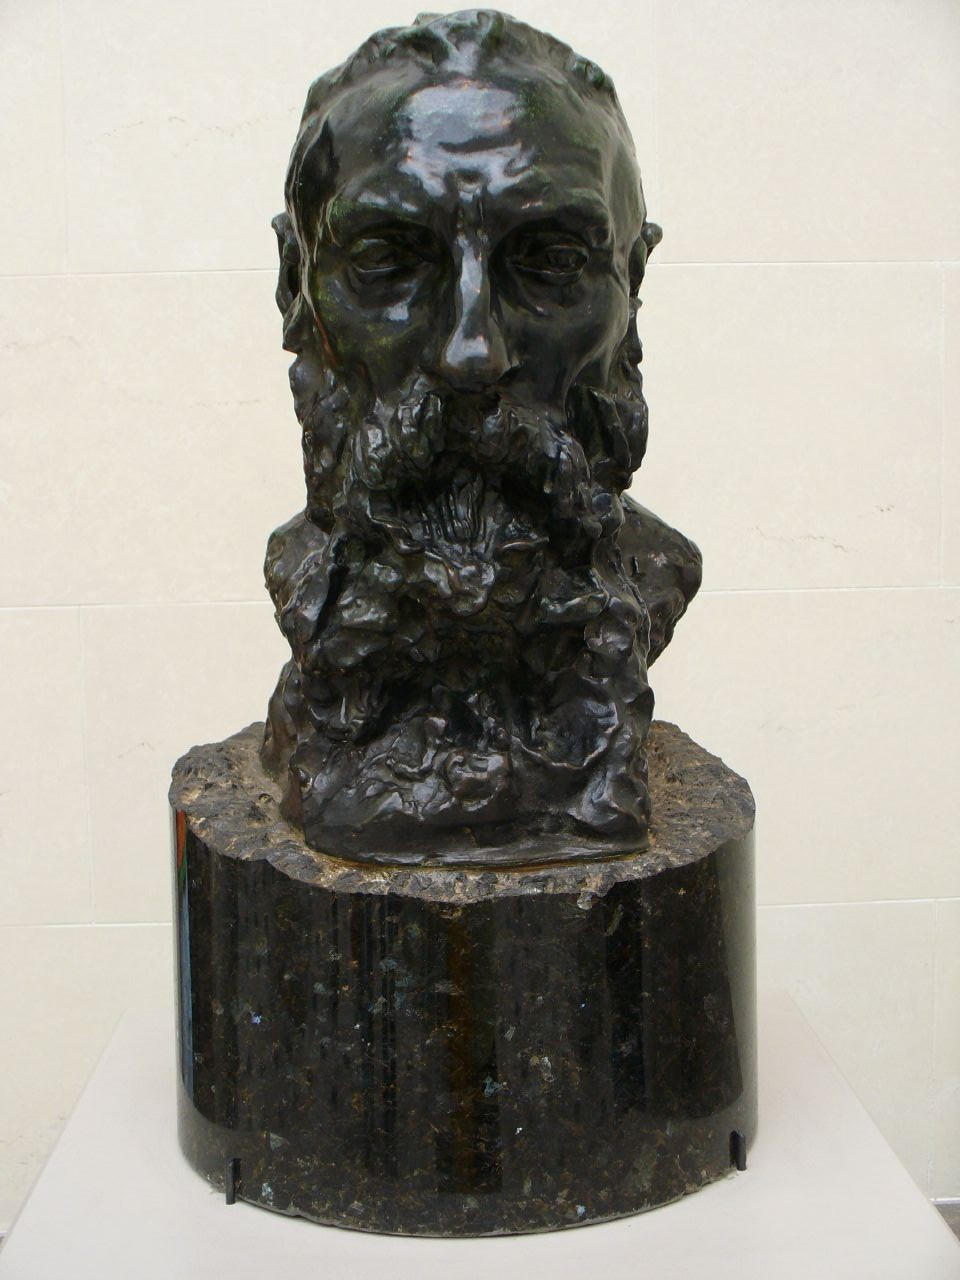 """Camille Claudel, """"Head of Rodin"""" (circa 1900) at the Legion of Honor in San Francisco (photo by lilakb/Flickr)"""